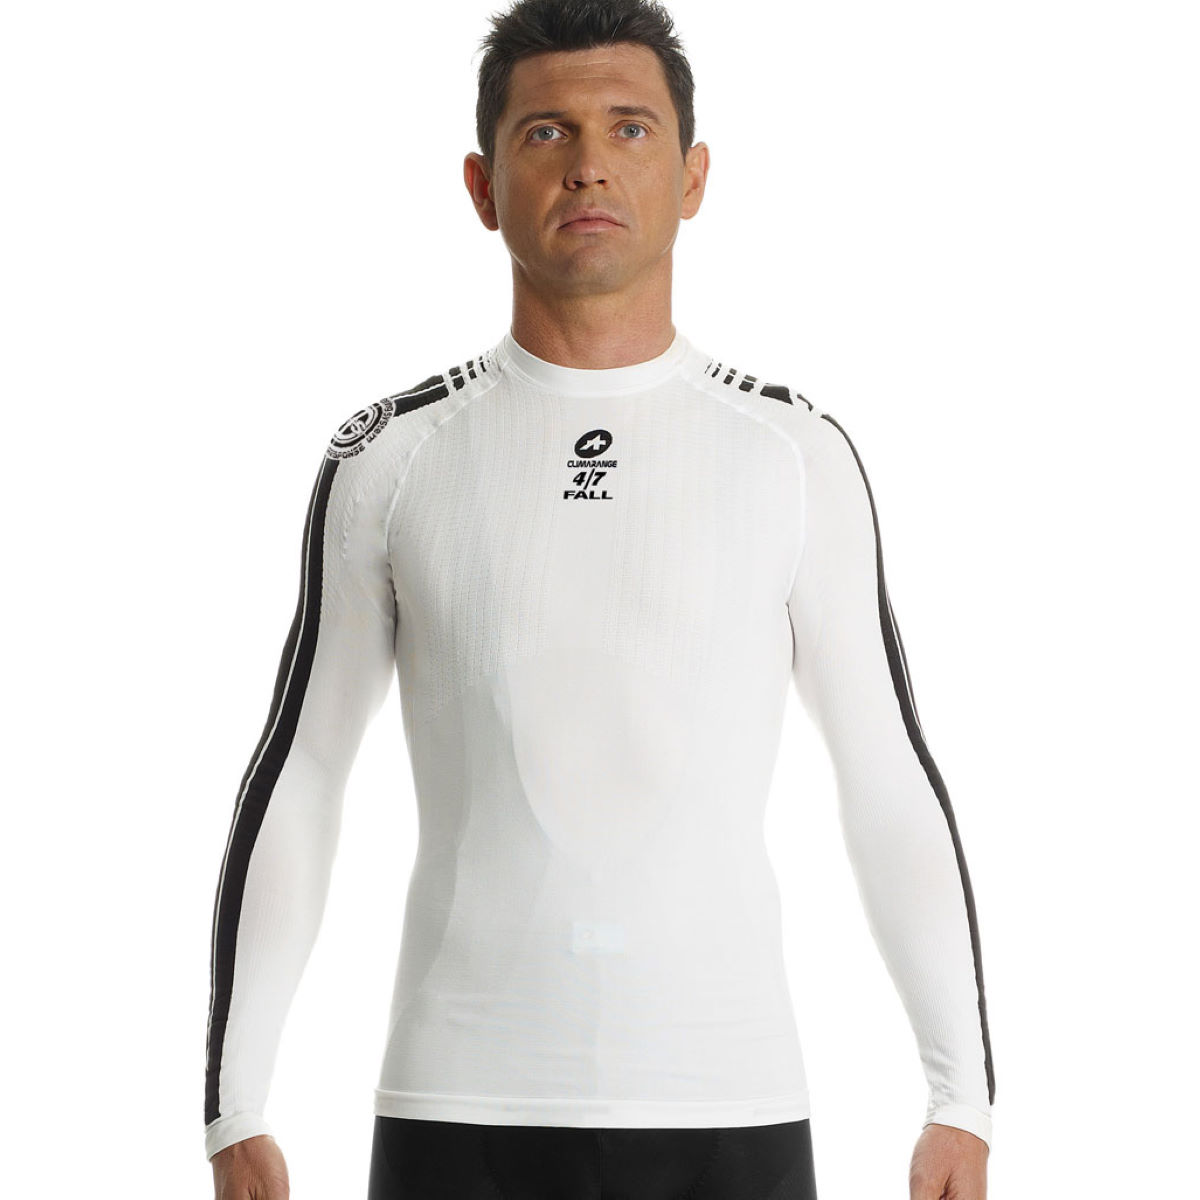 Assos LS.skinFoil_fall Long Sleeve Base Layer